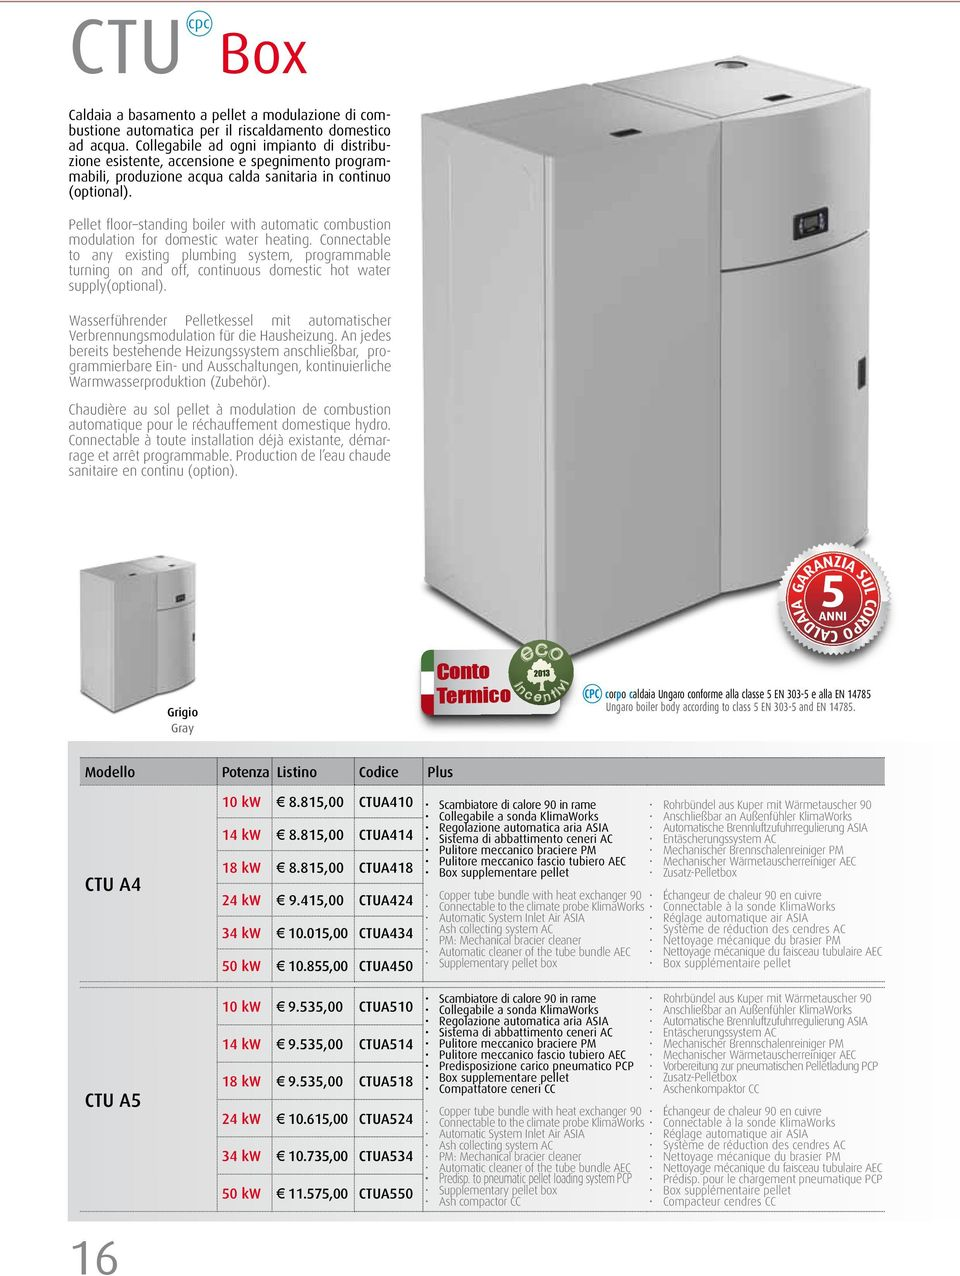 Pellet floor standing boiler with automatic combustion modulation for domestic water heating.